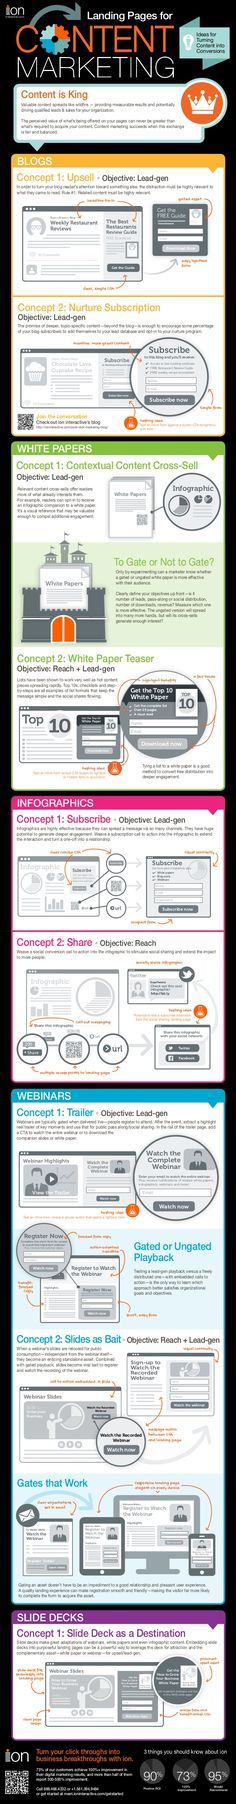 10 Landing Pages that Convert for Content Marketing #Infographic